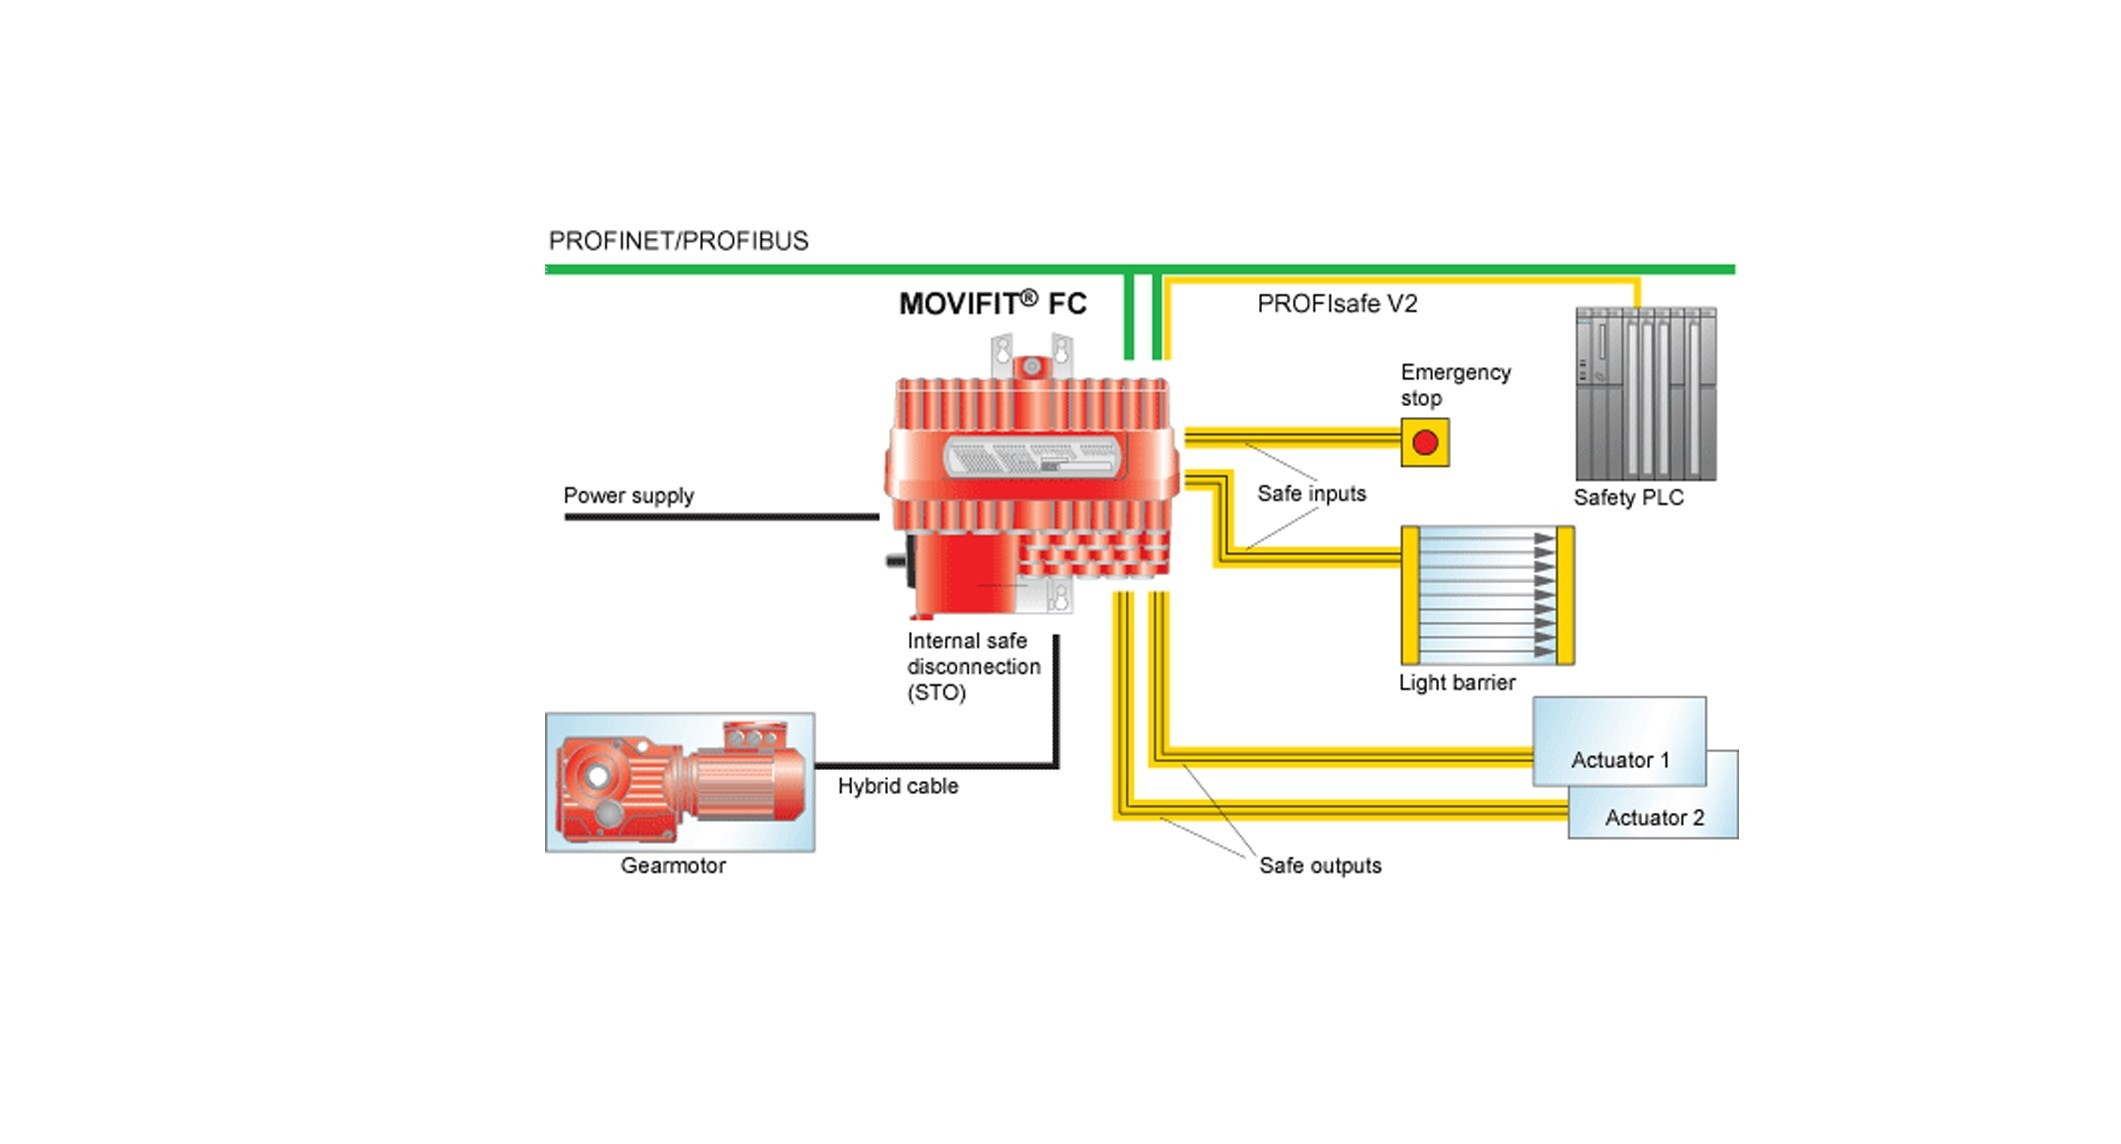 movifit fc safety options s11 movifit� fc standard inverters classic sew eurodrive sew drn motor wiring diagram at soozxer.org